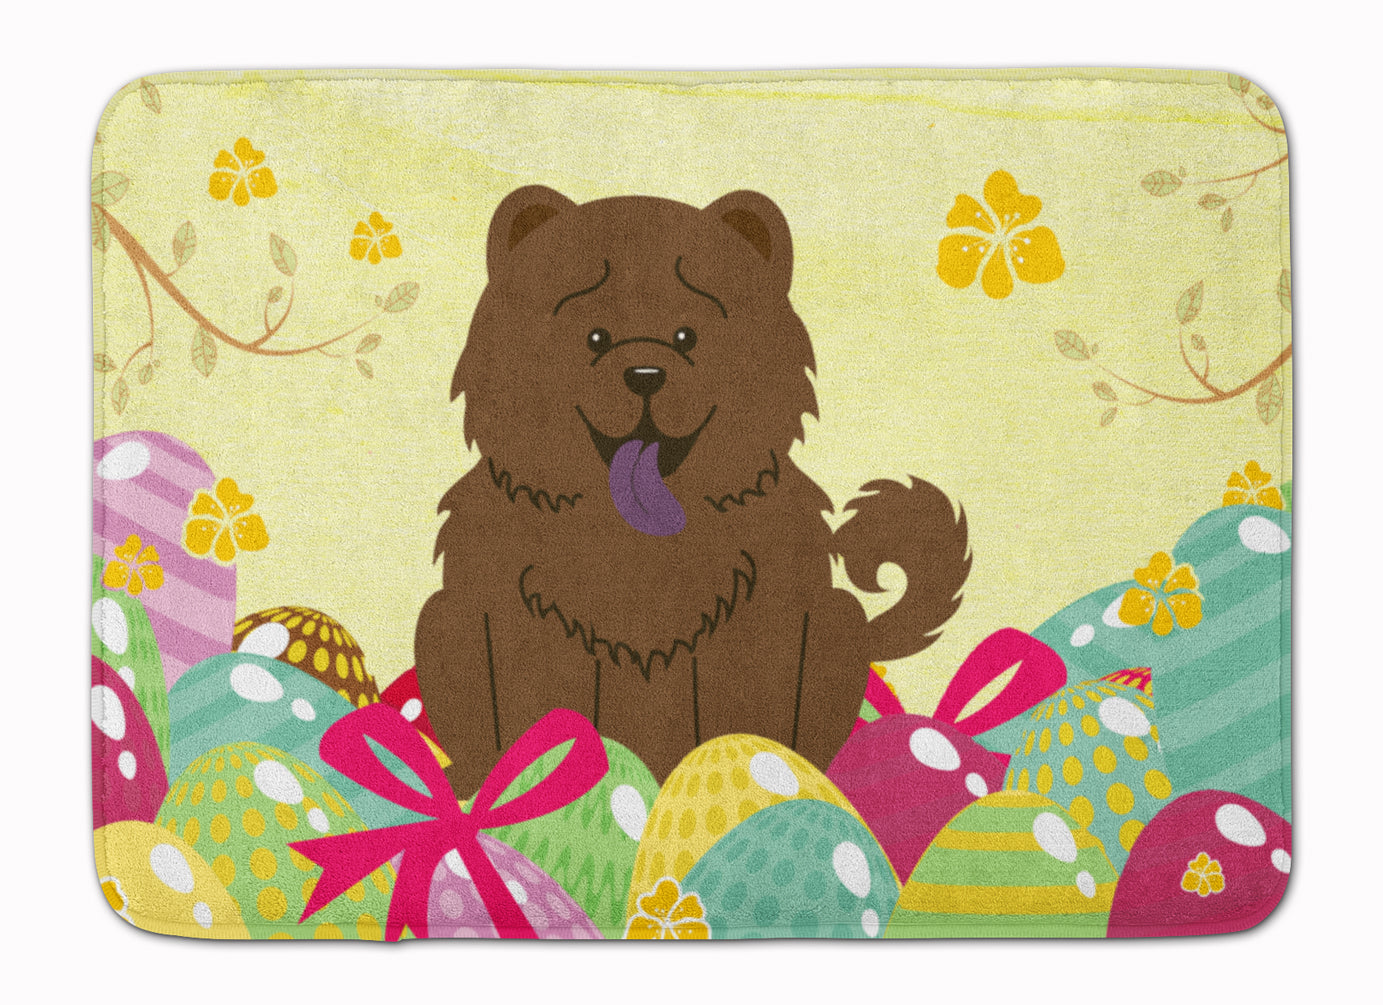 Easter Eggs Chow Chow Chocolate Machine Washable Memory Foam Mat BB6141RUG by Caroline's Treasures